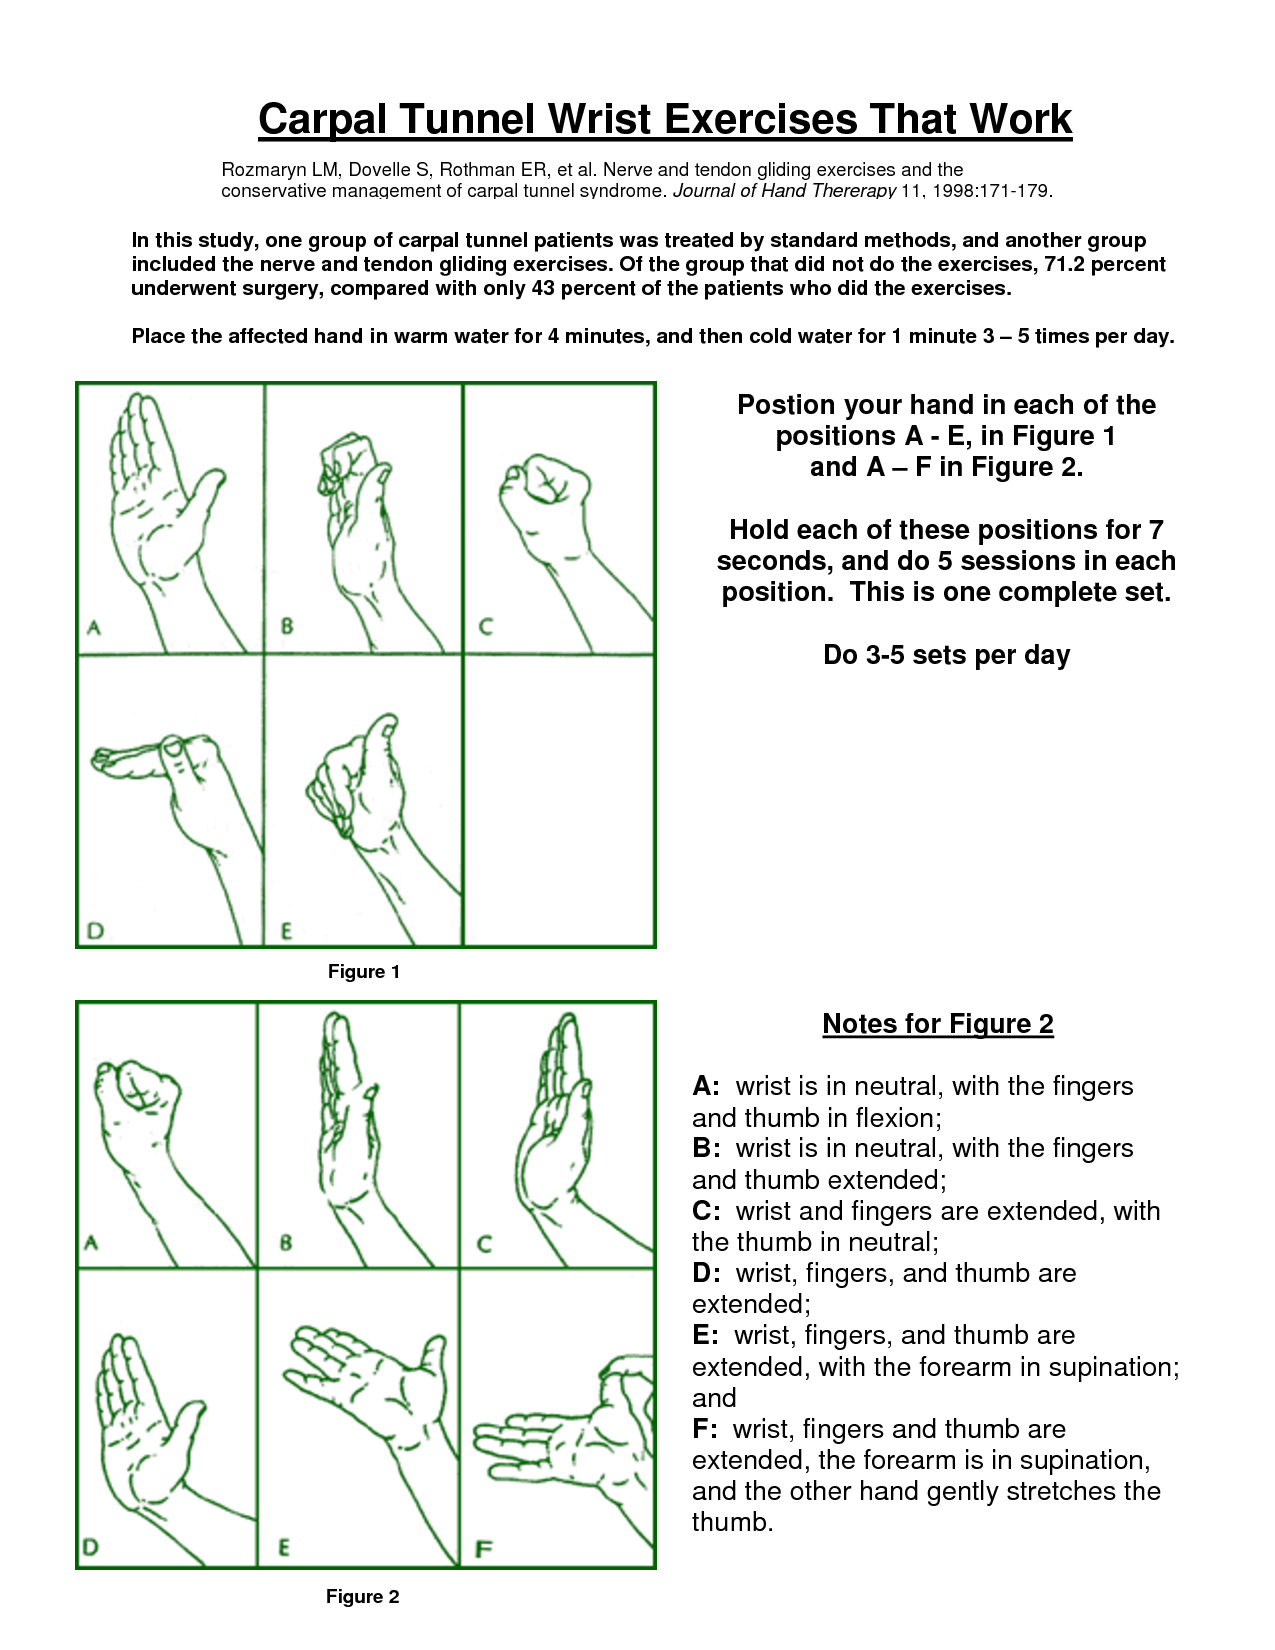 47+ Carpal tunnel syndrome exercises with pictures ideas